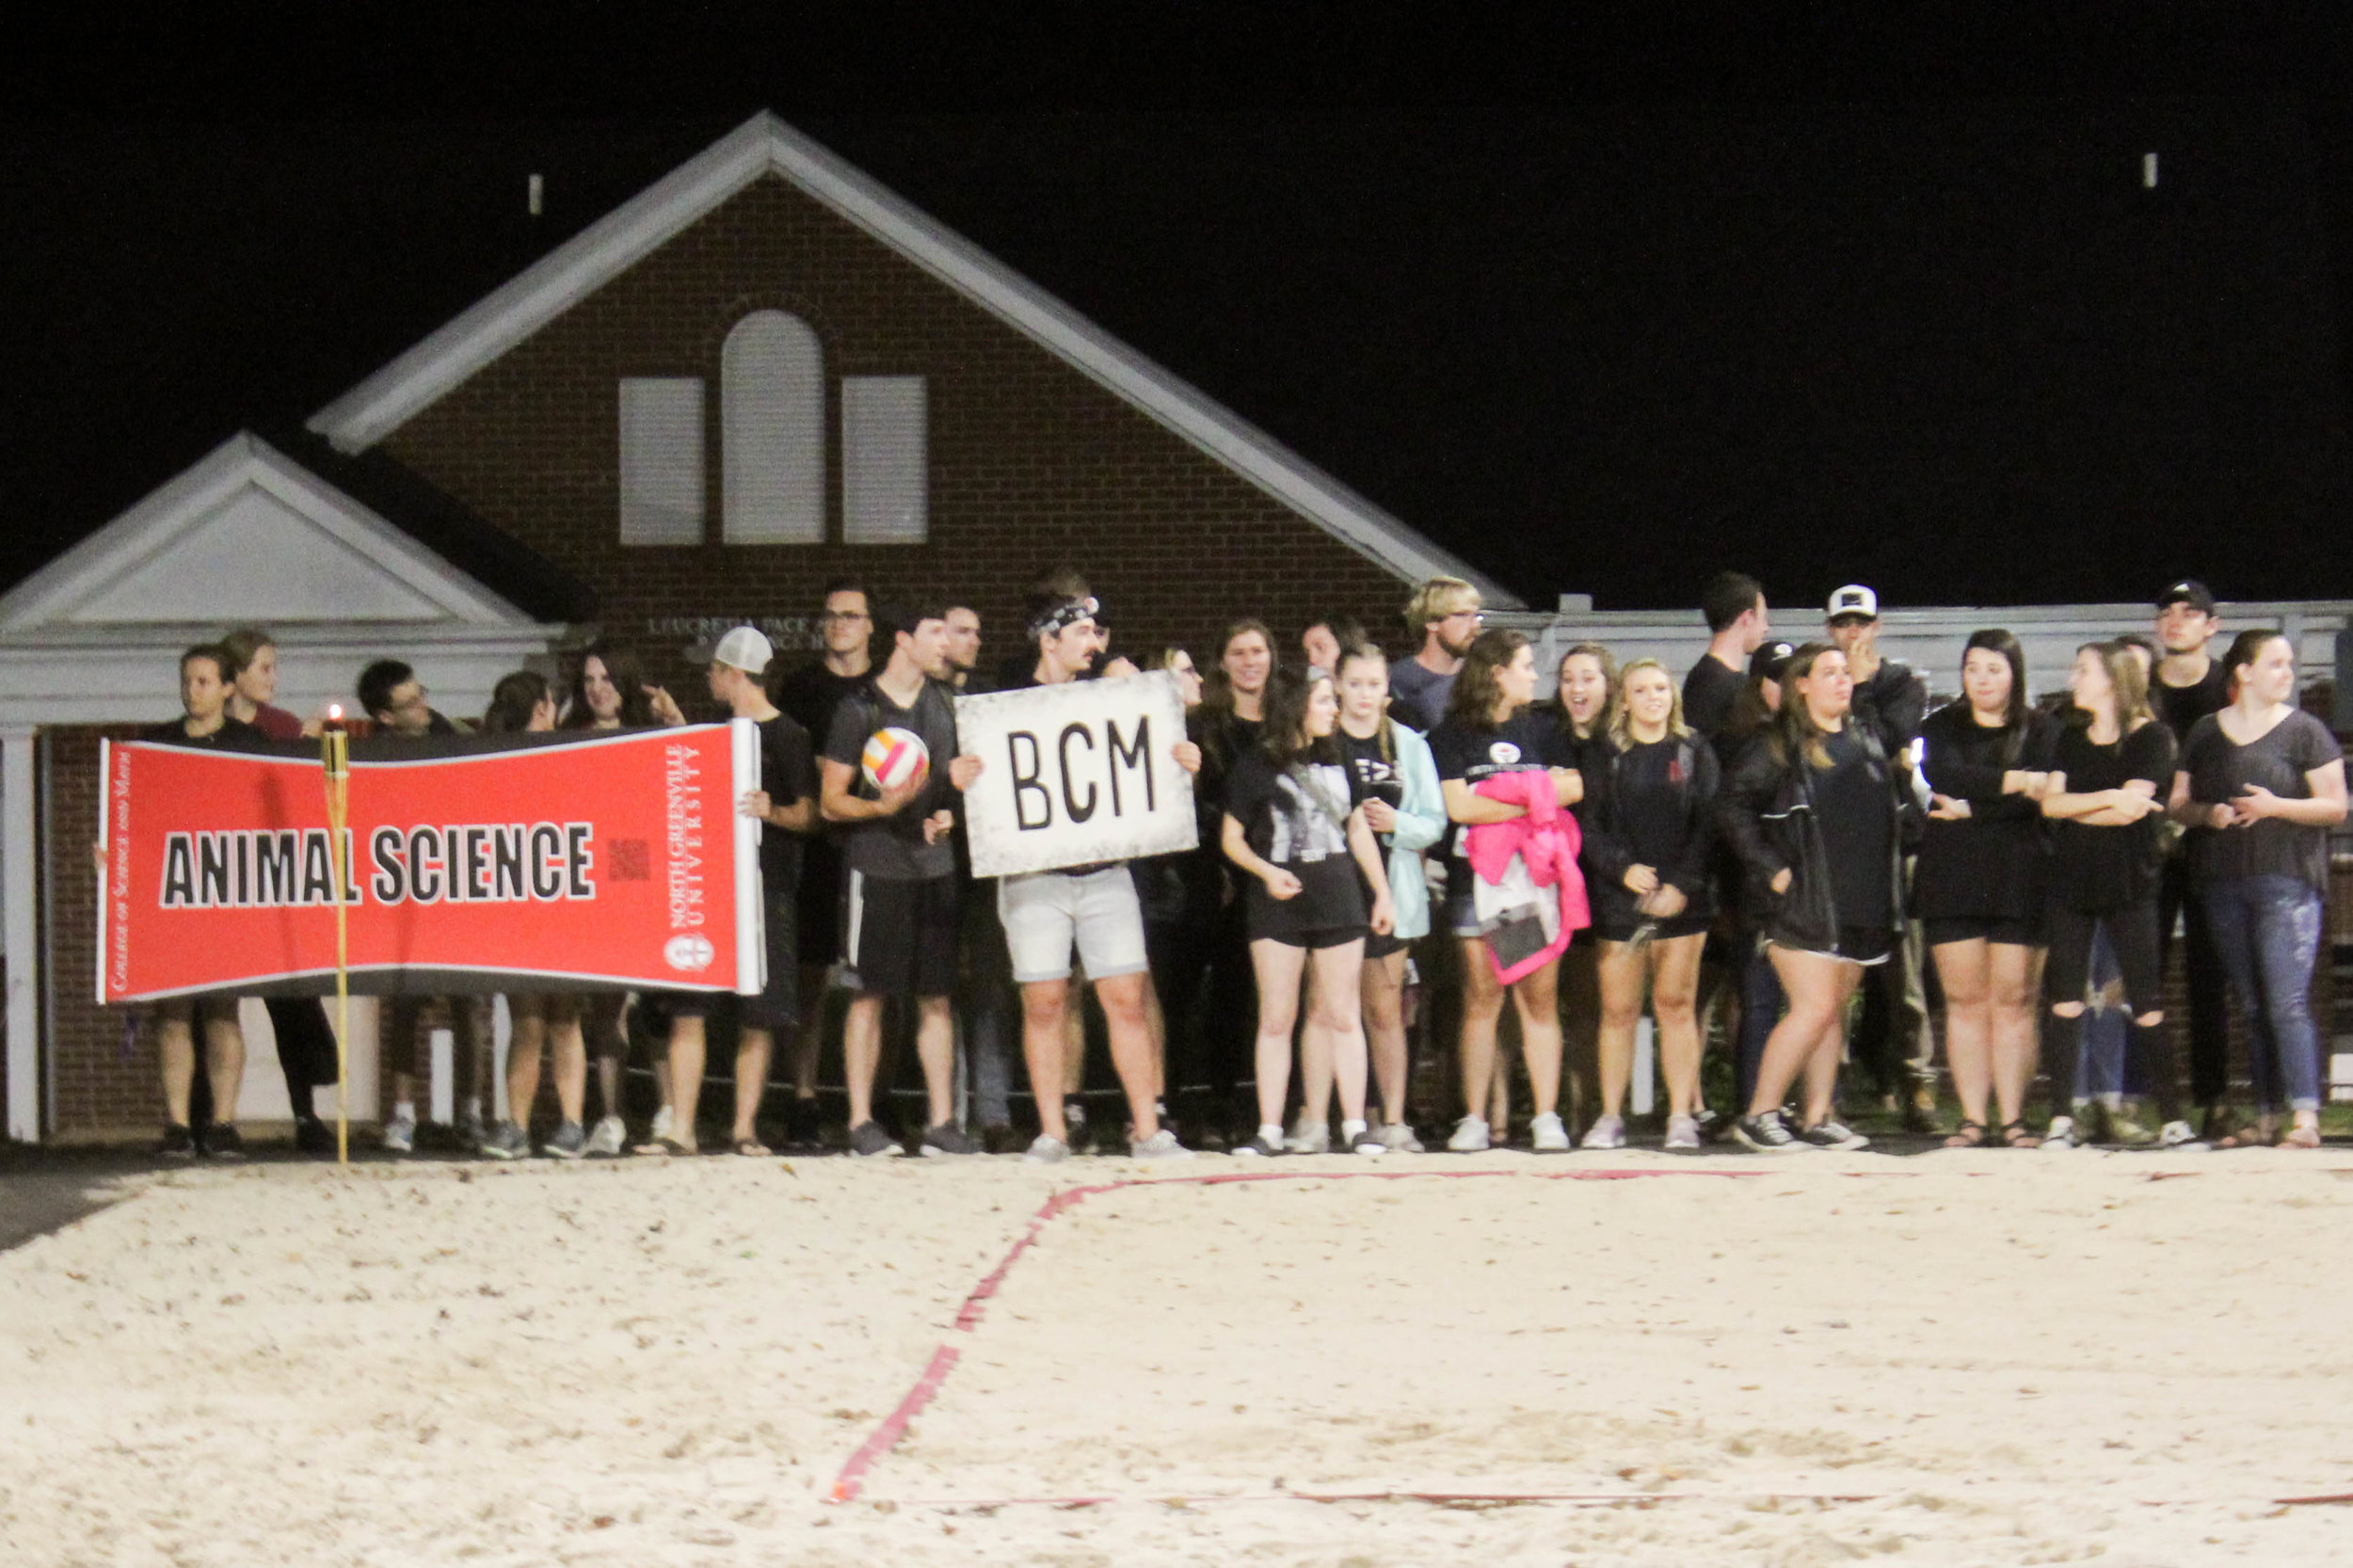 The animal science club and BCM line up and wait for the other clubs to line up.